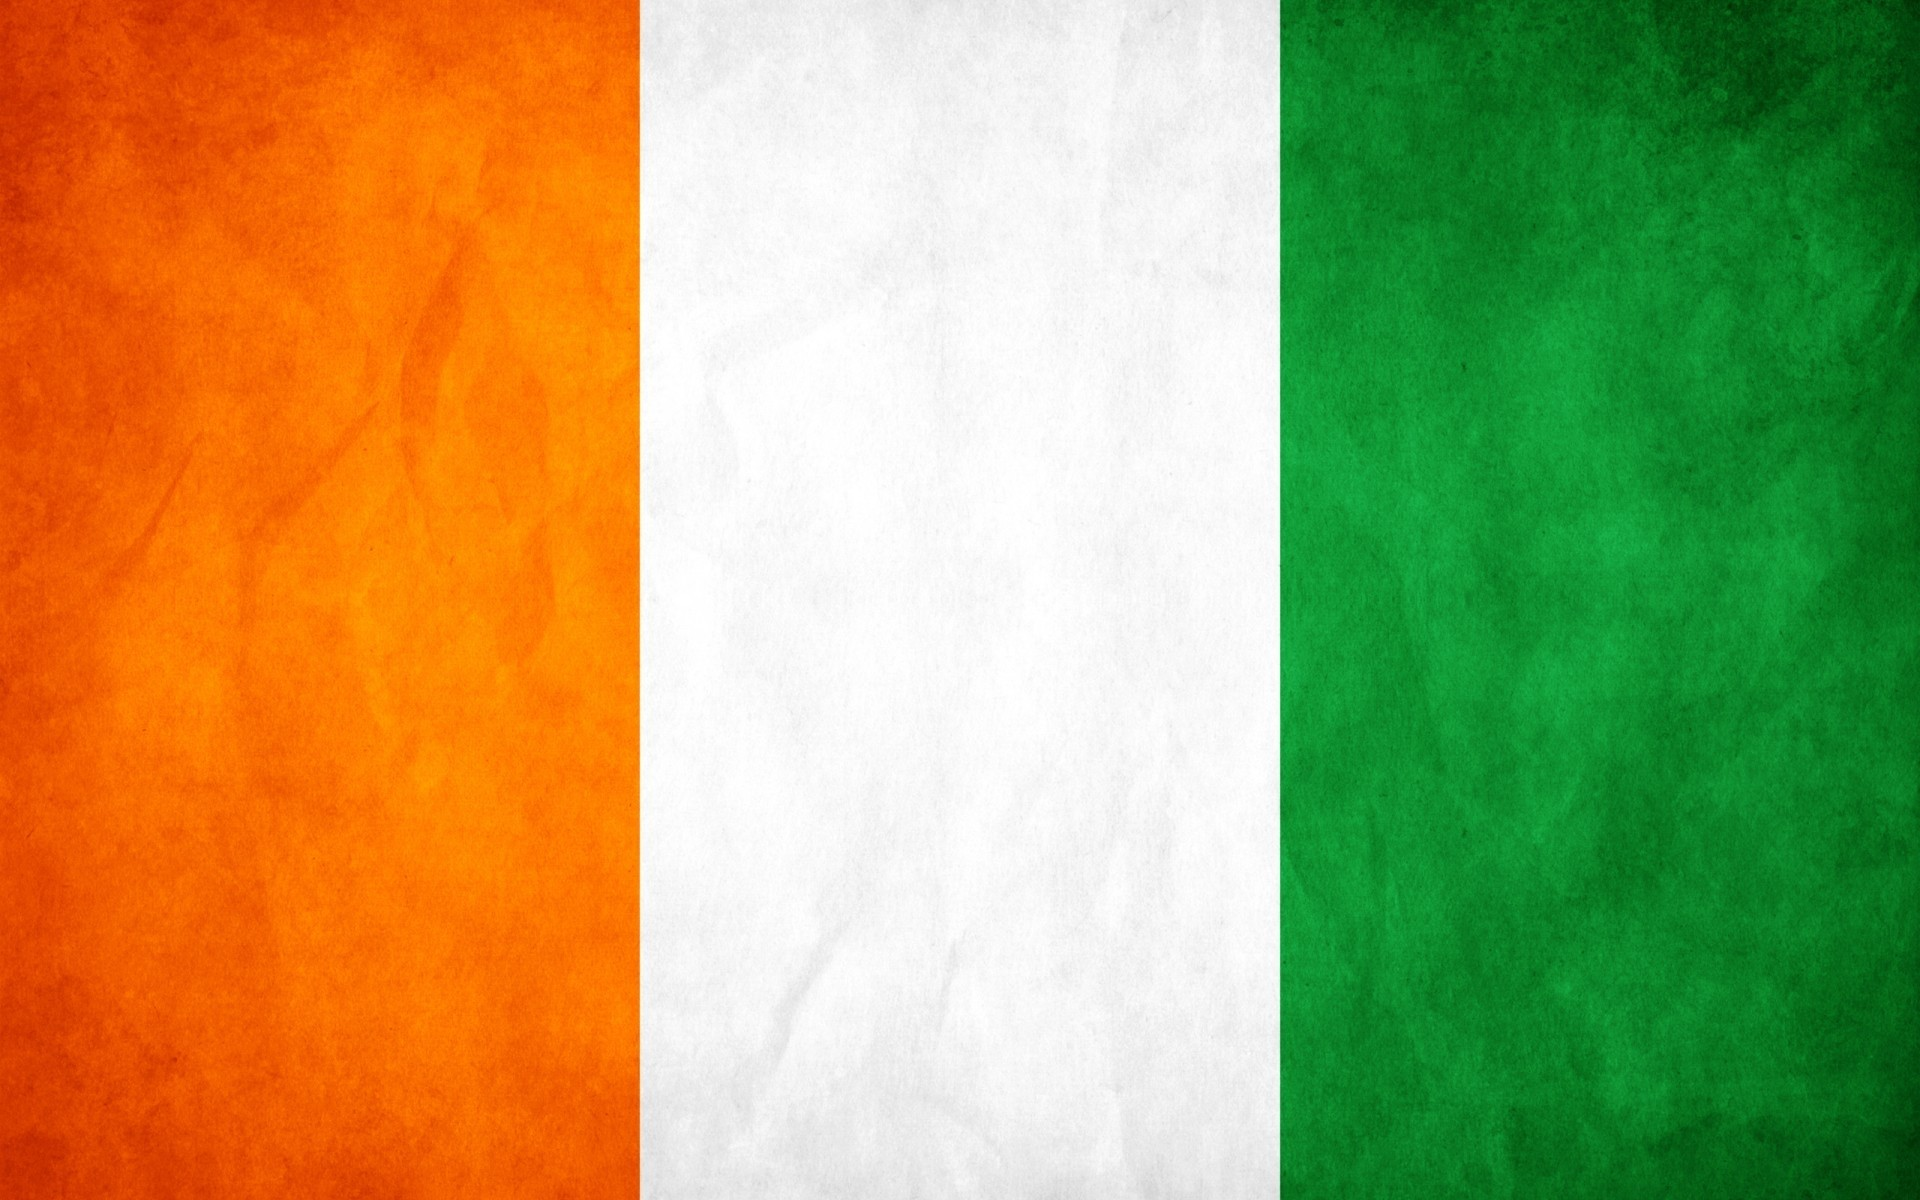 Green white orange Flags HD Wallpaper